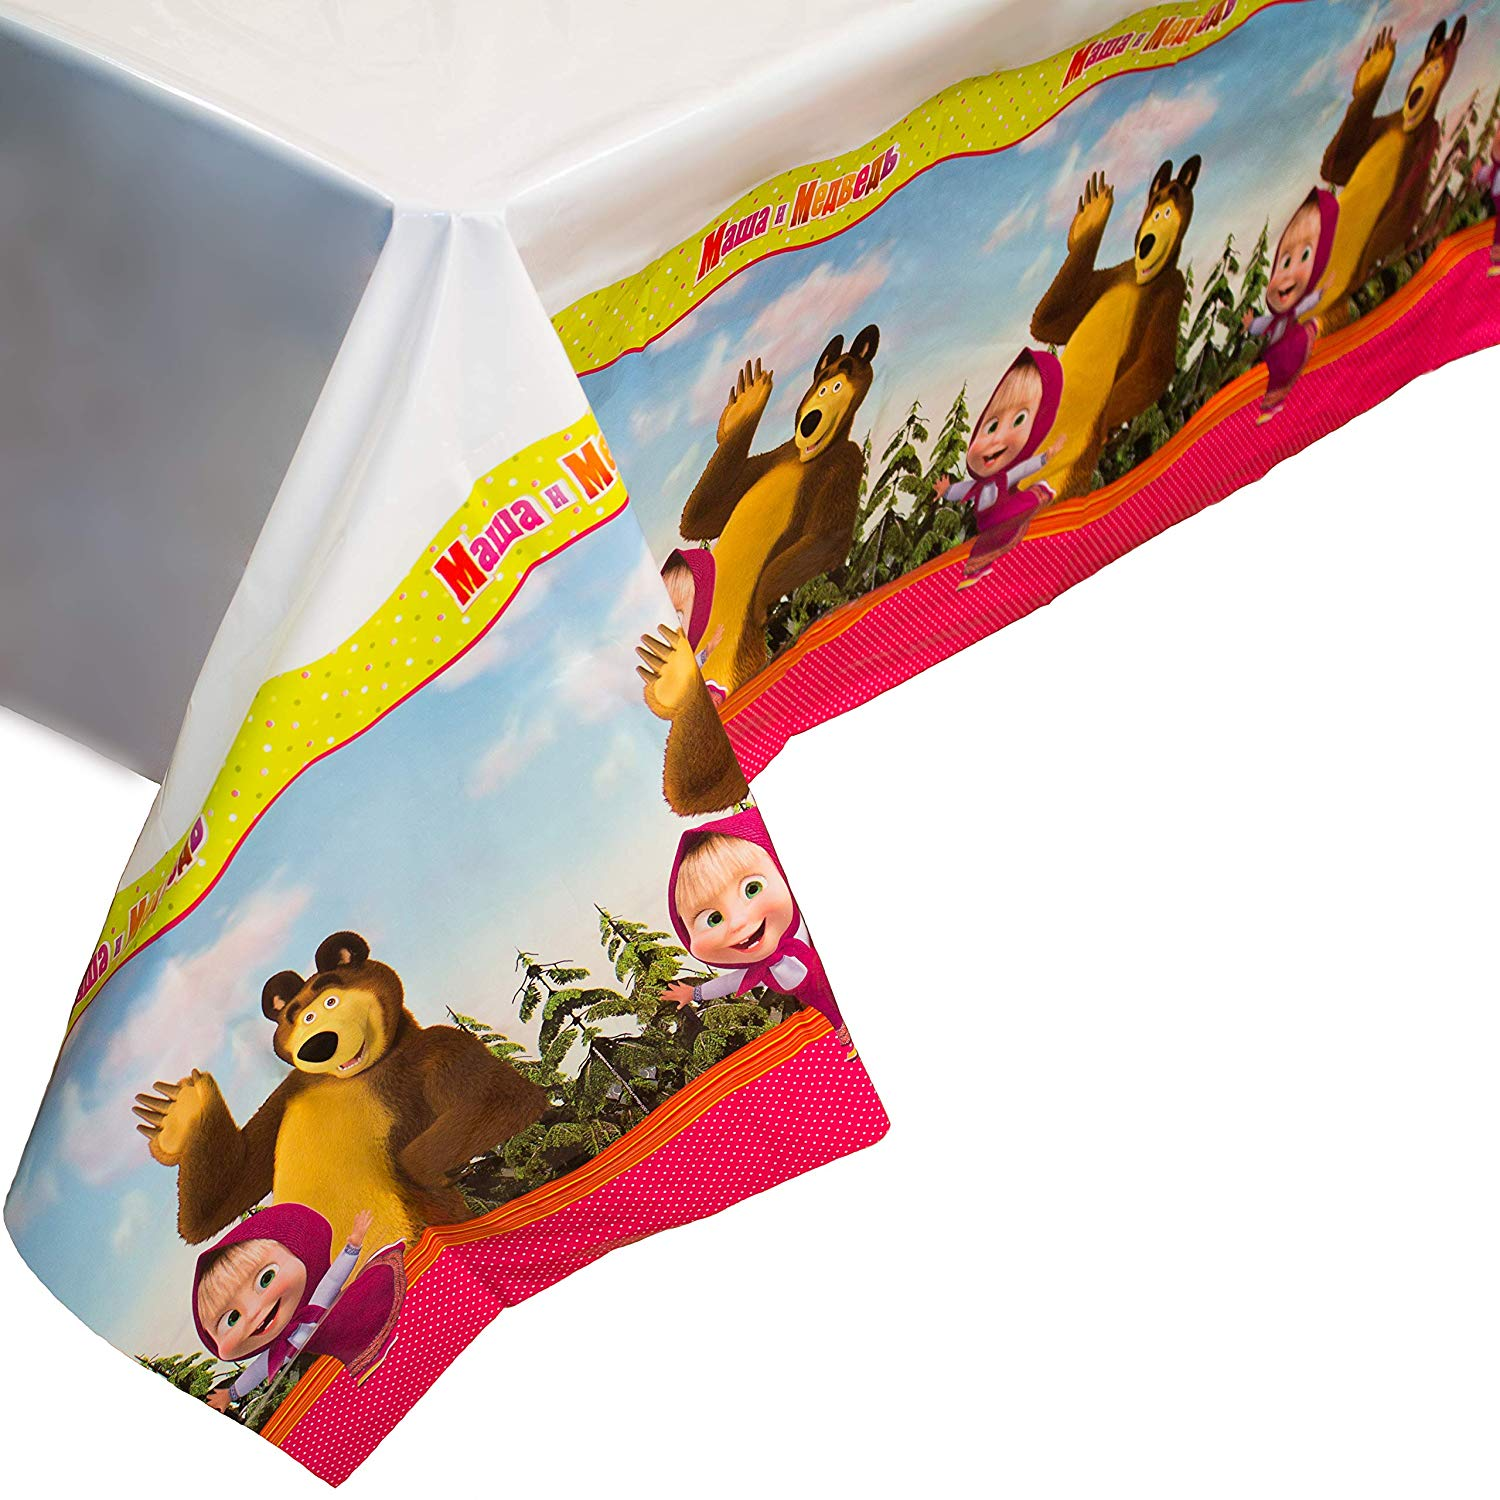 Bright Tablecloth Masha and the Bear for Kids Birthday Party Supplies with Favorite Characters